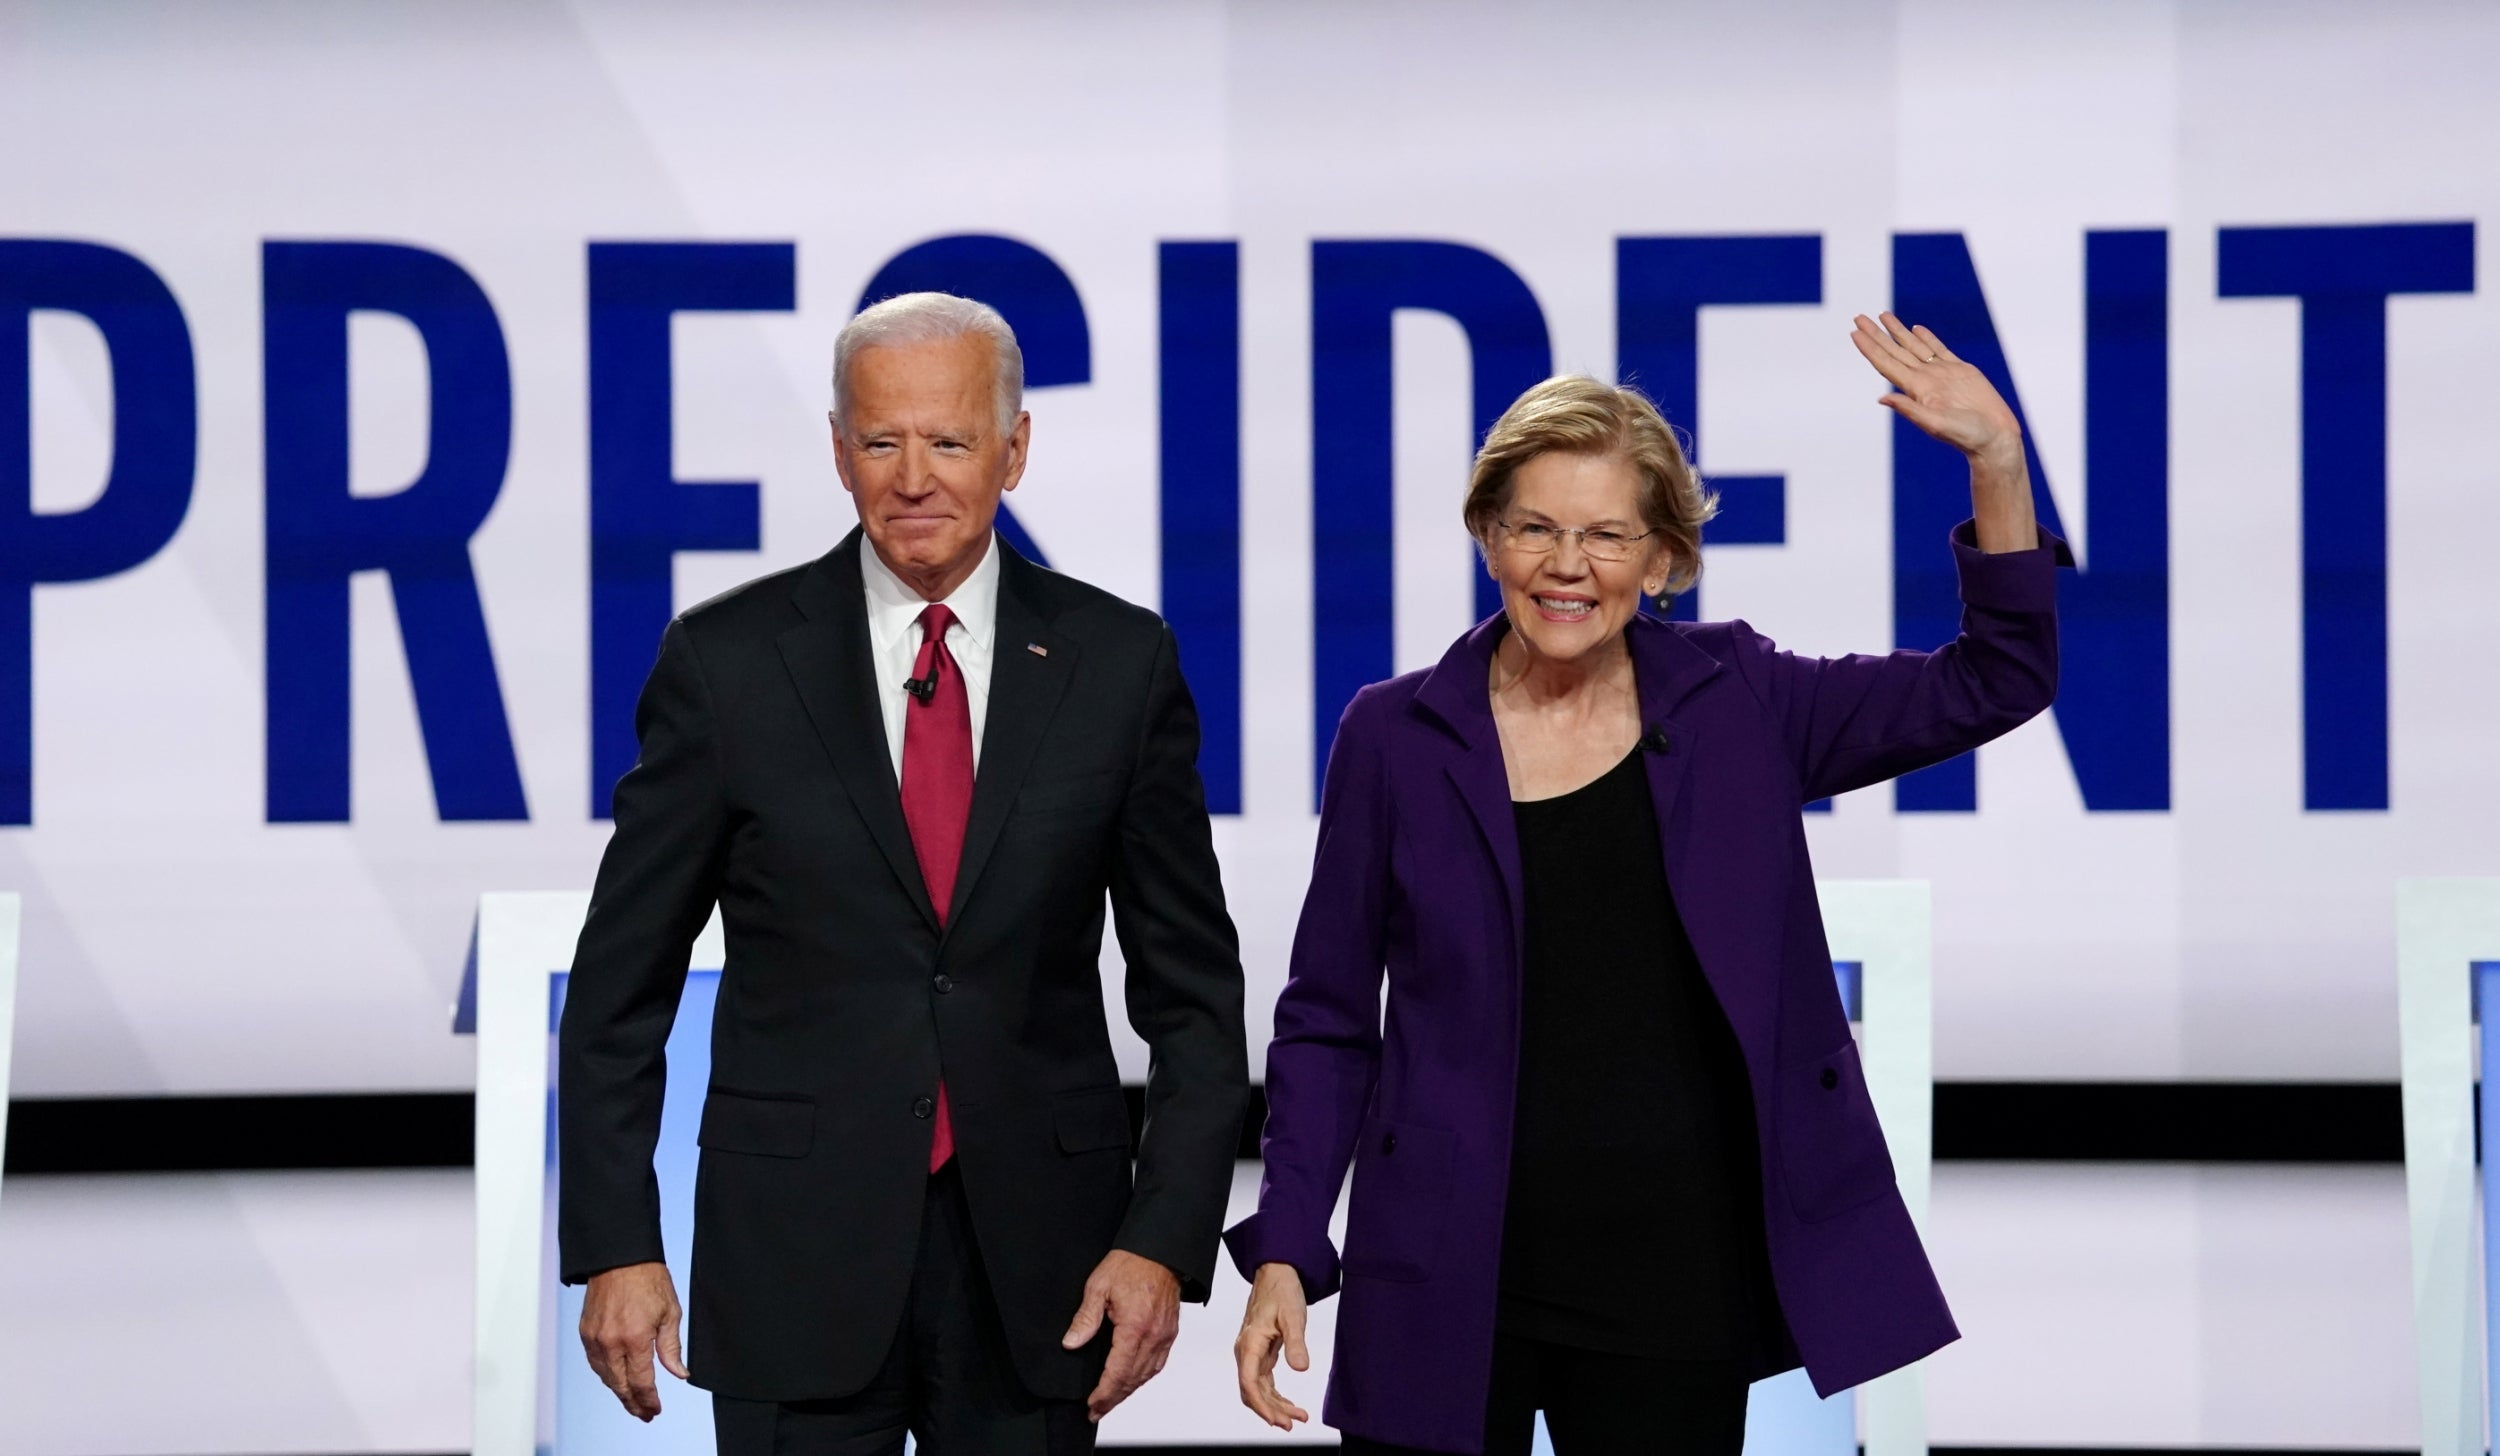 When asked about his most surprising friendship at the Democratic debate, Joe Biden should have just told the truth